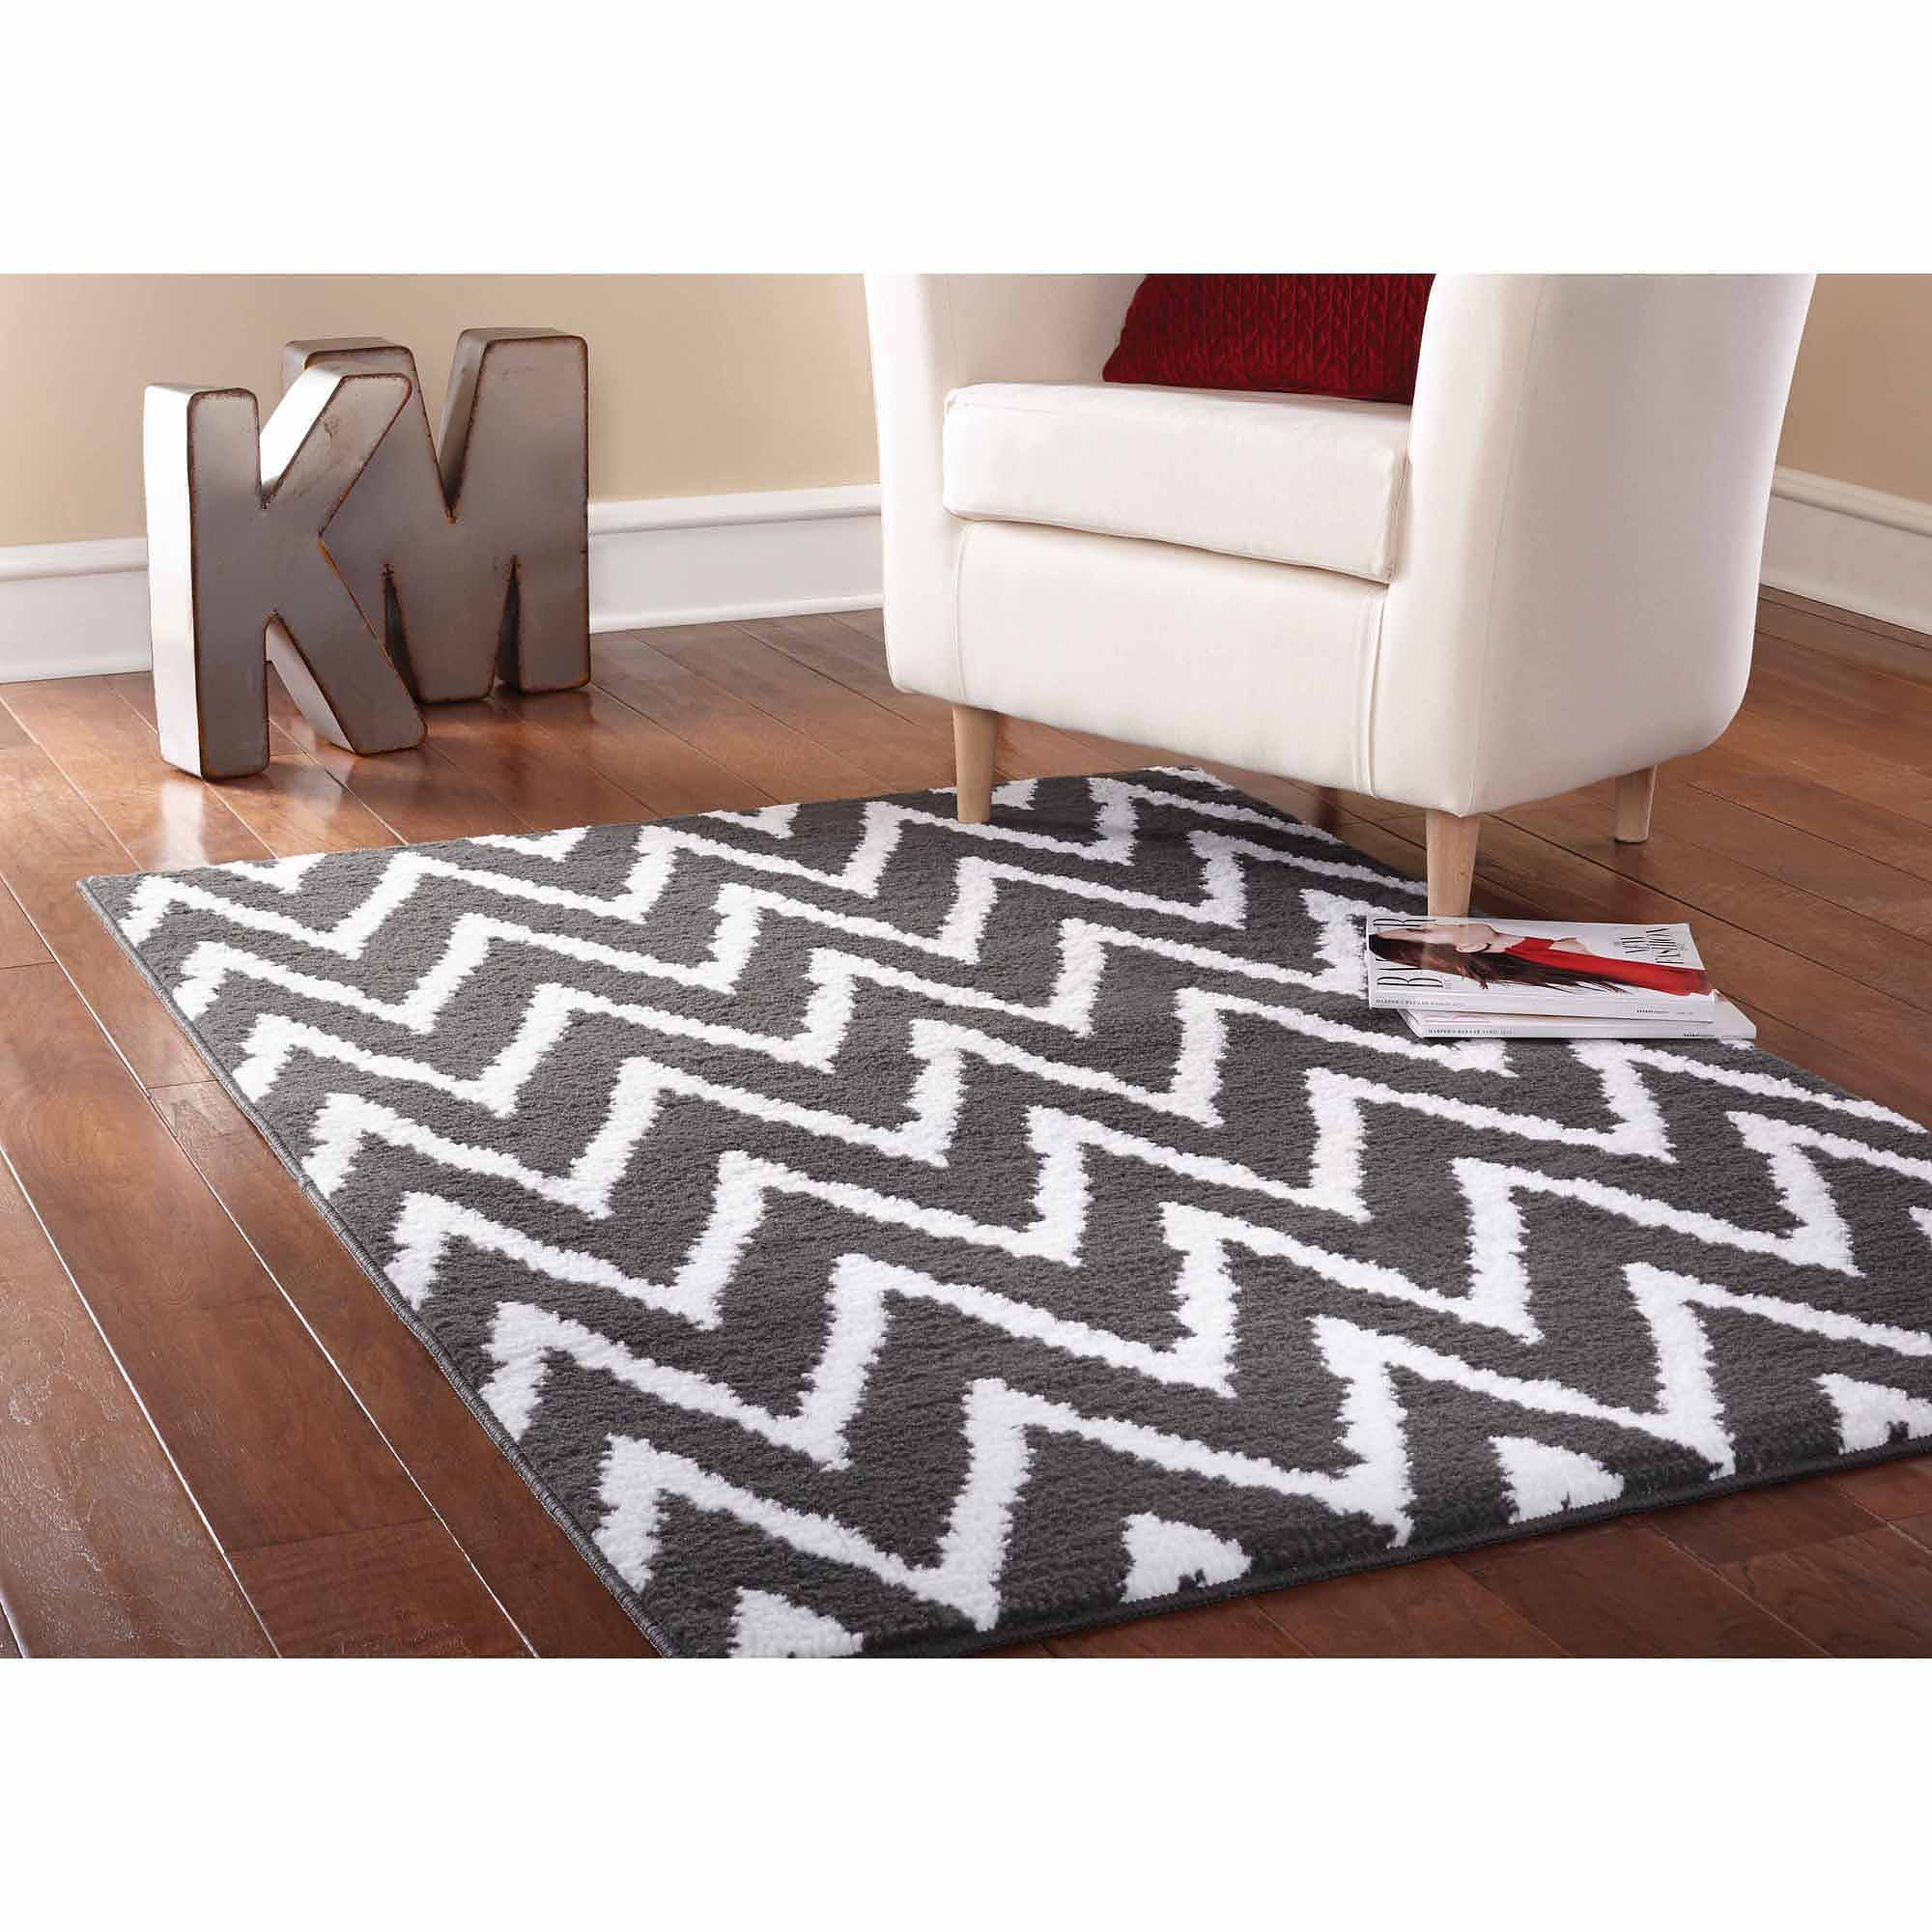 Mainstays Distressed Zig Zag Cinder Area Rug, Gray/White